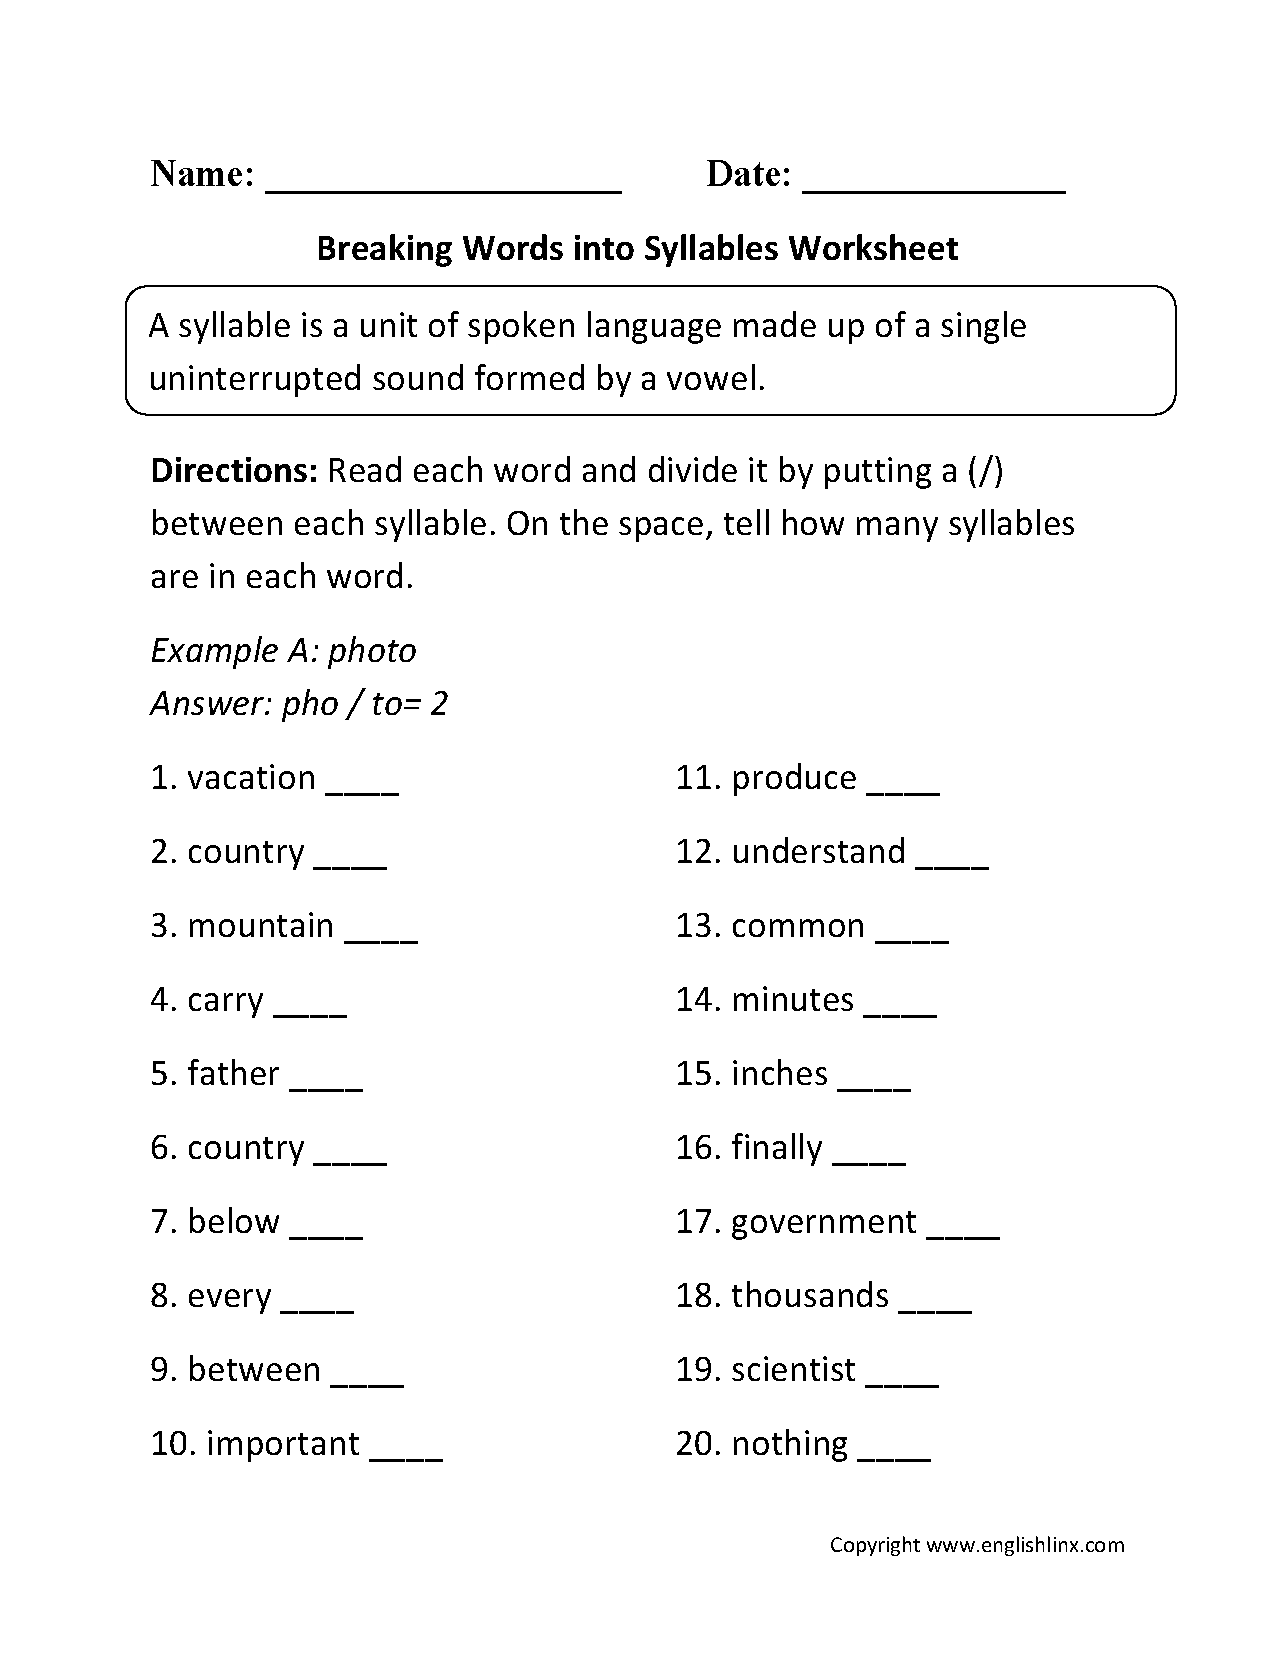 Breaking Words Into Syllables Worksheets In